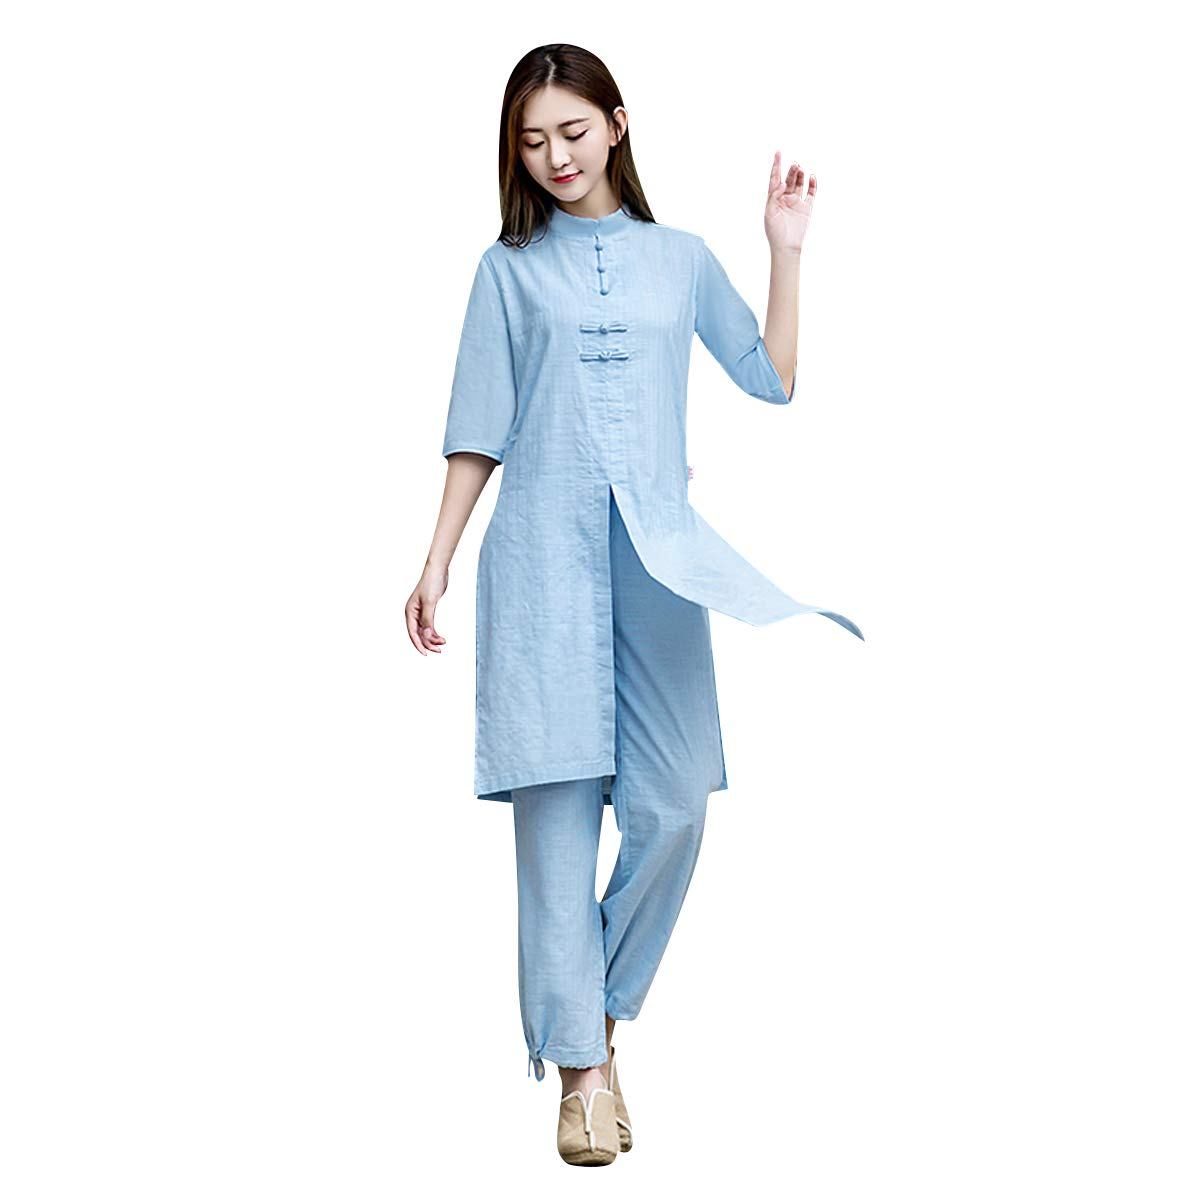 KSUA Womens Tai Chi Suit Linen Martial Arts Clothes Half Sleeves Yoga Clothing